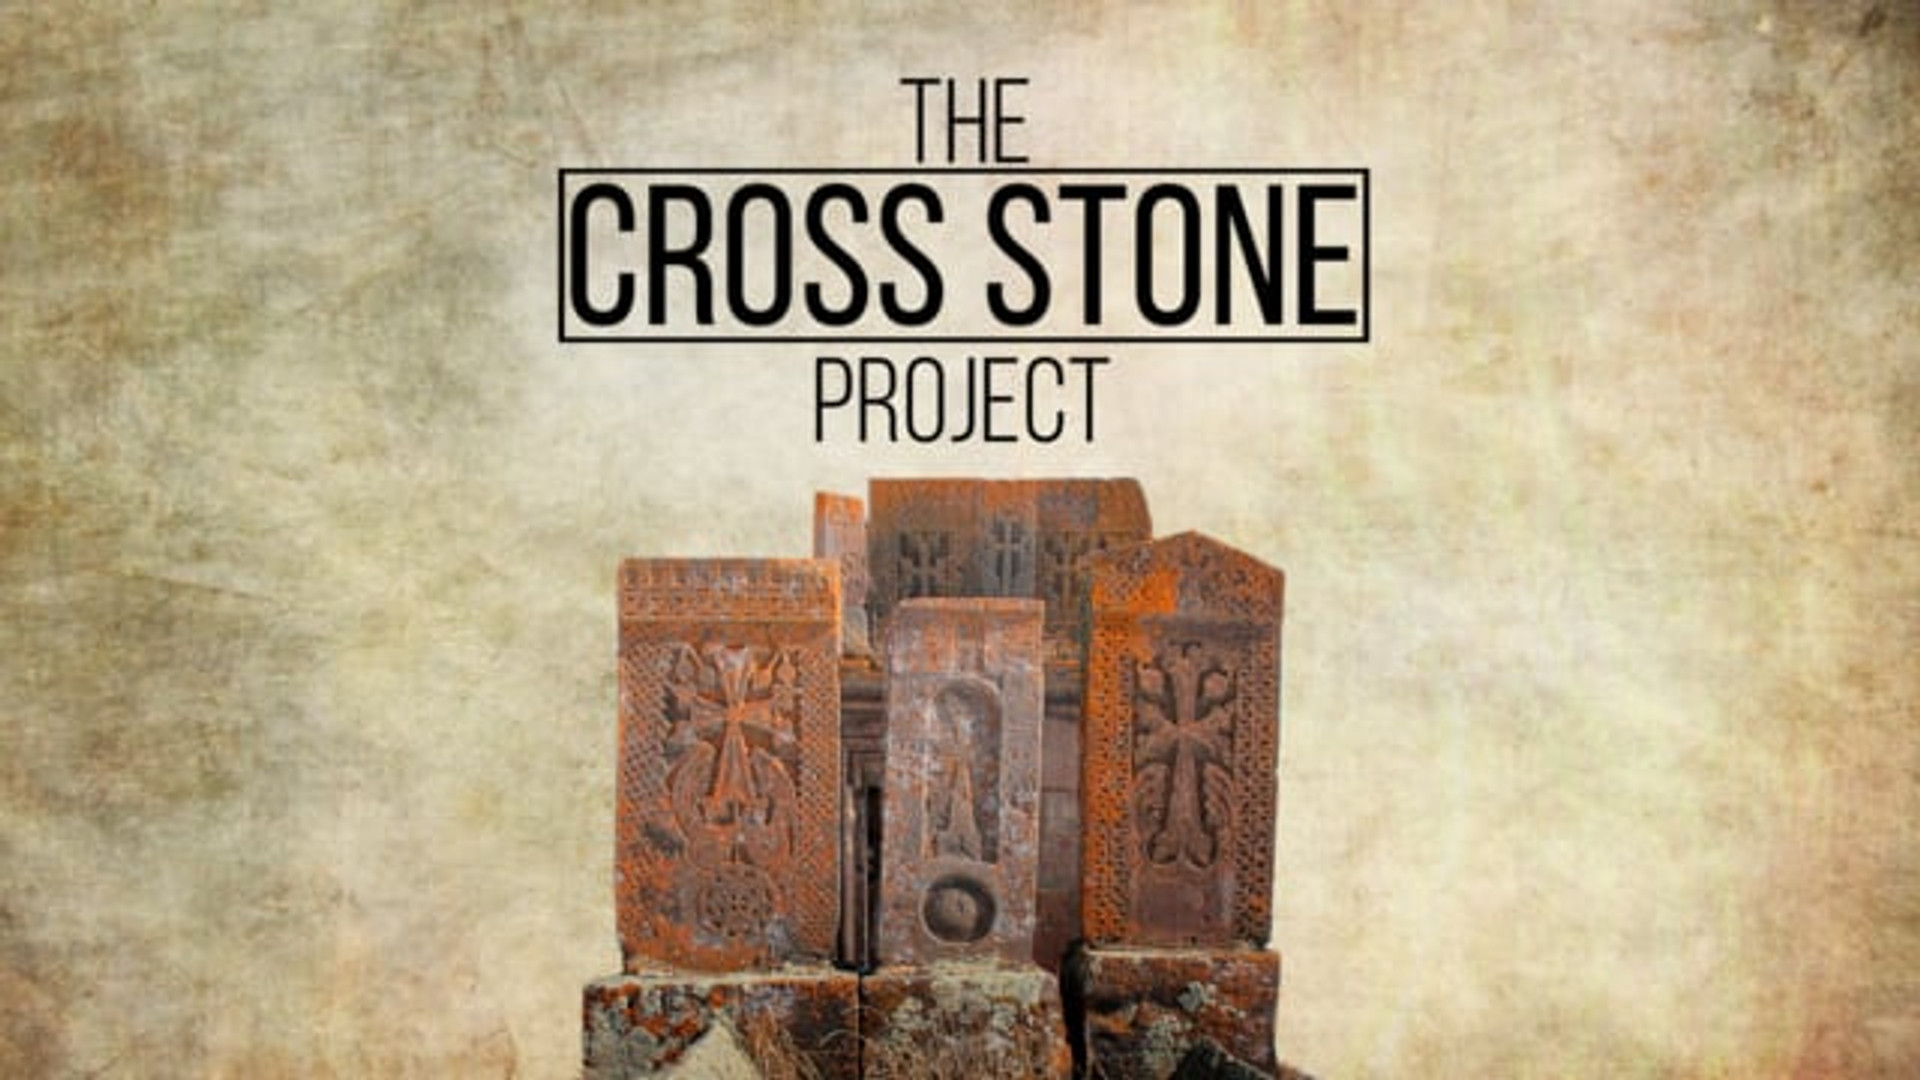 The Cross Stone Project